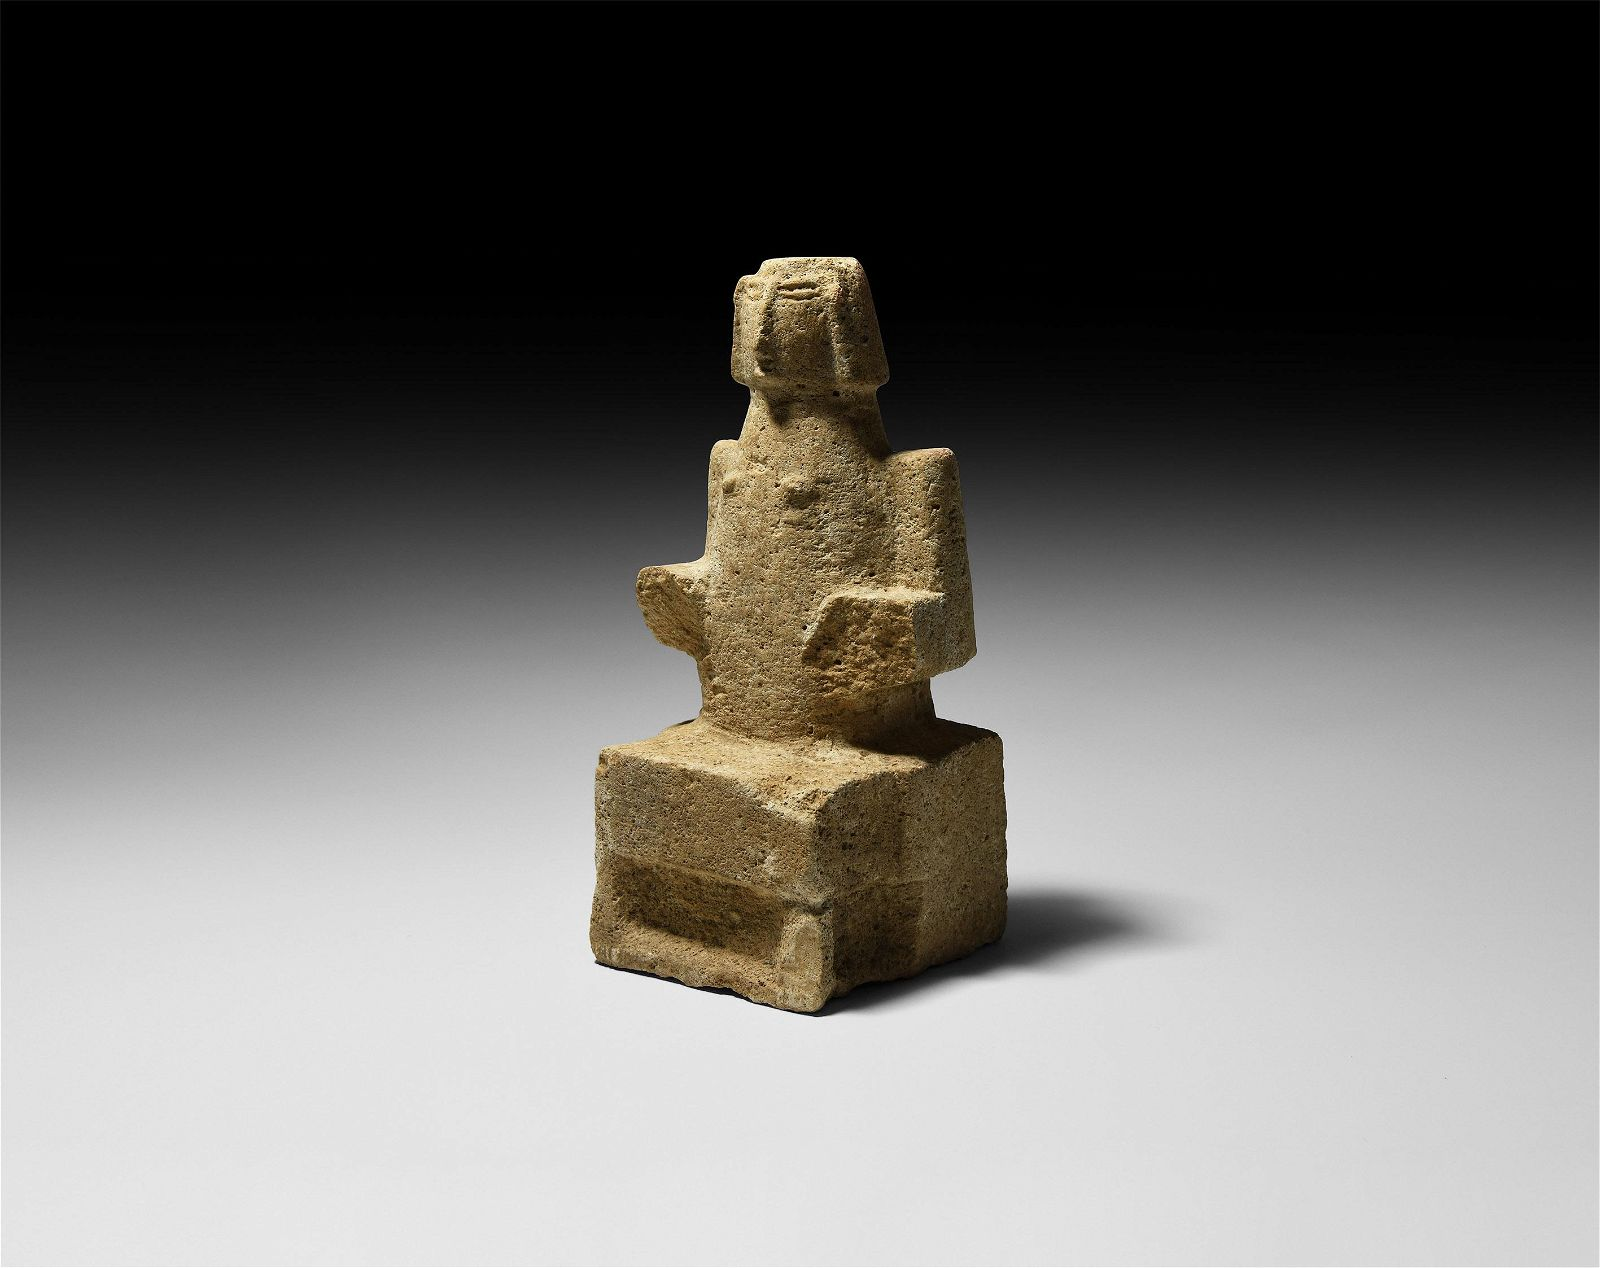 Western Asiatic South Arabian Figurative Sculpture